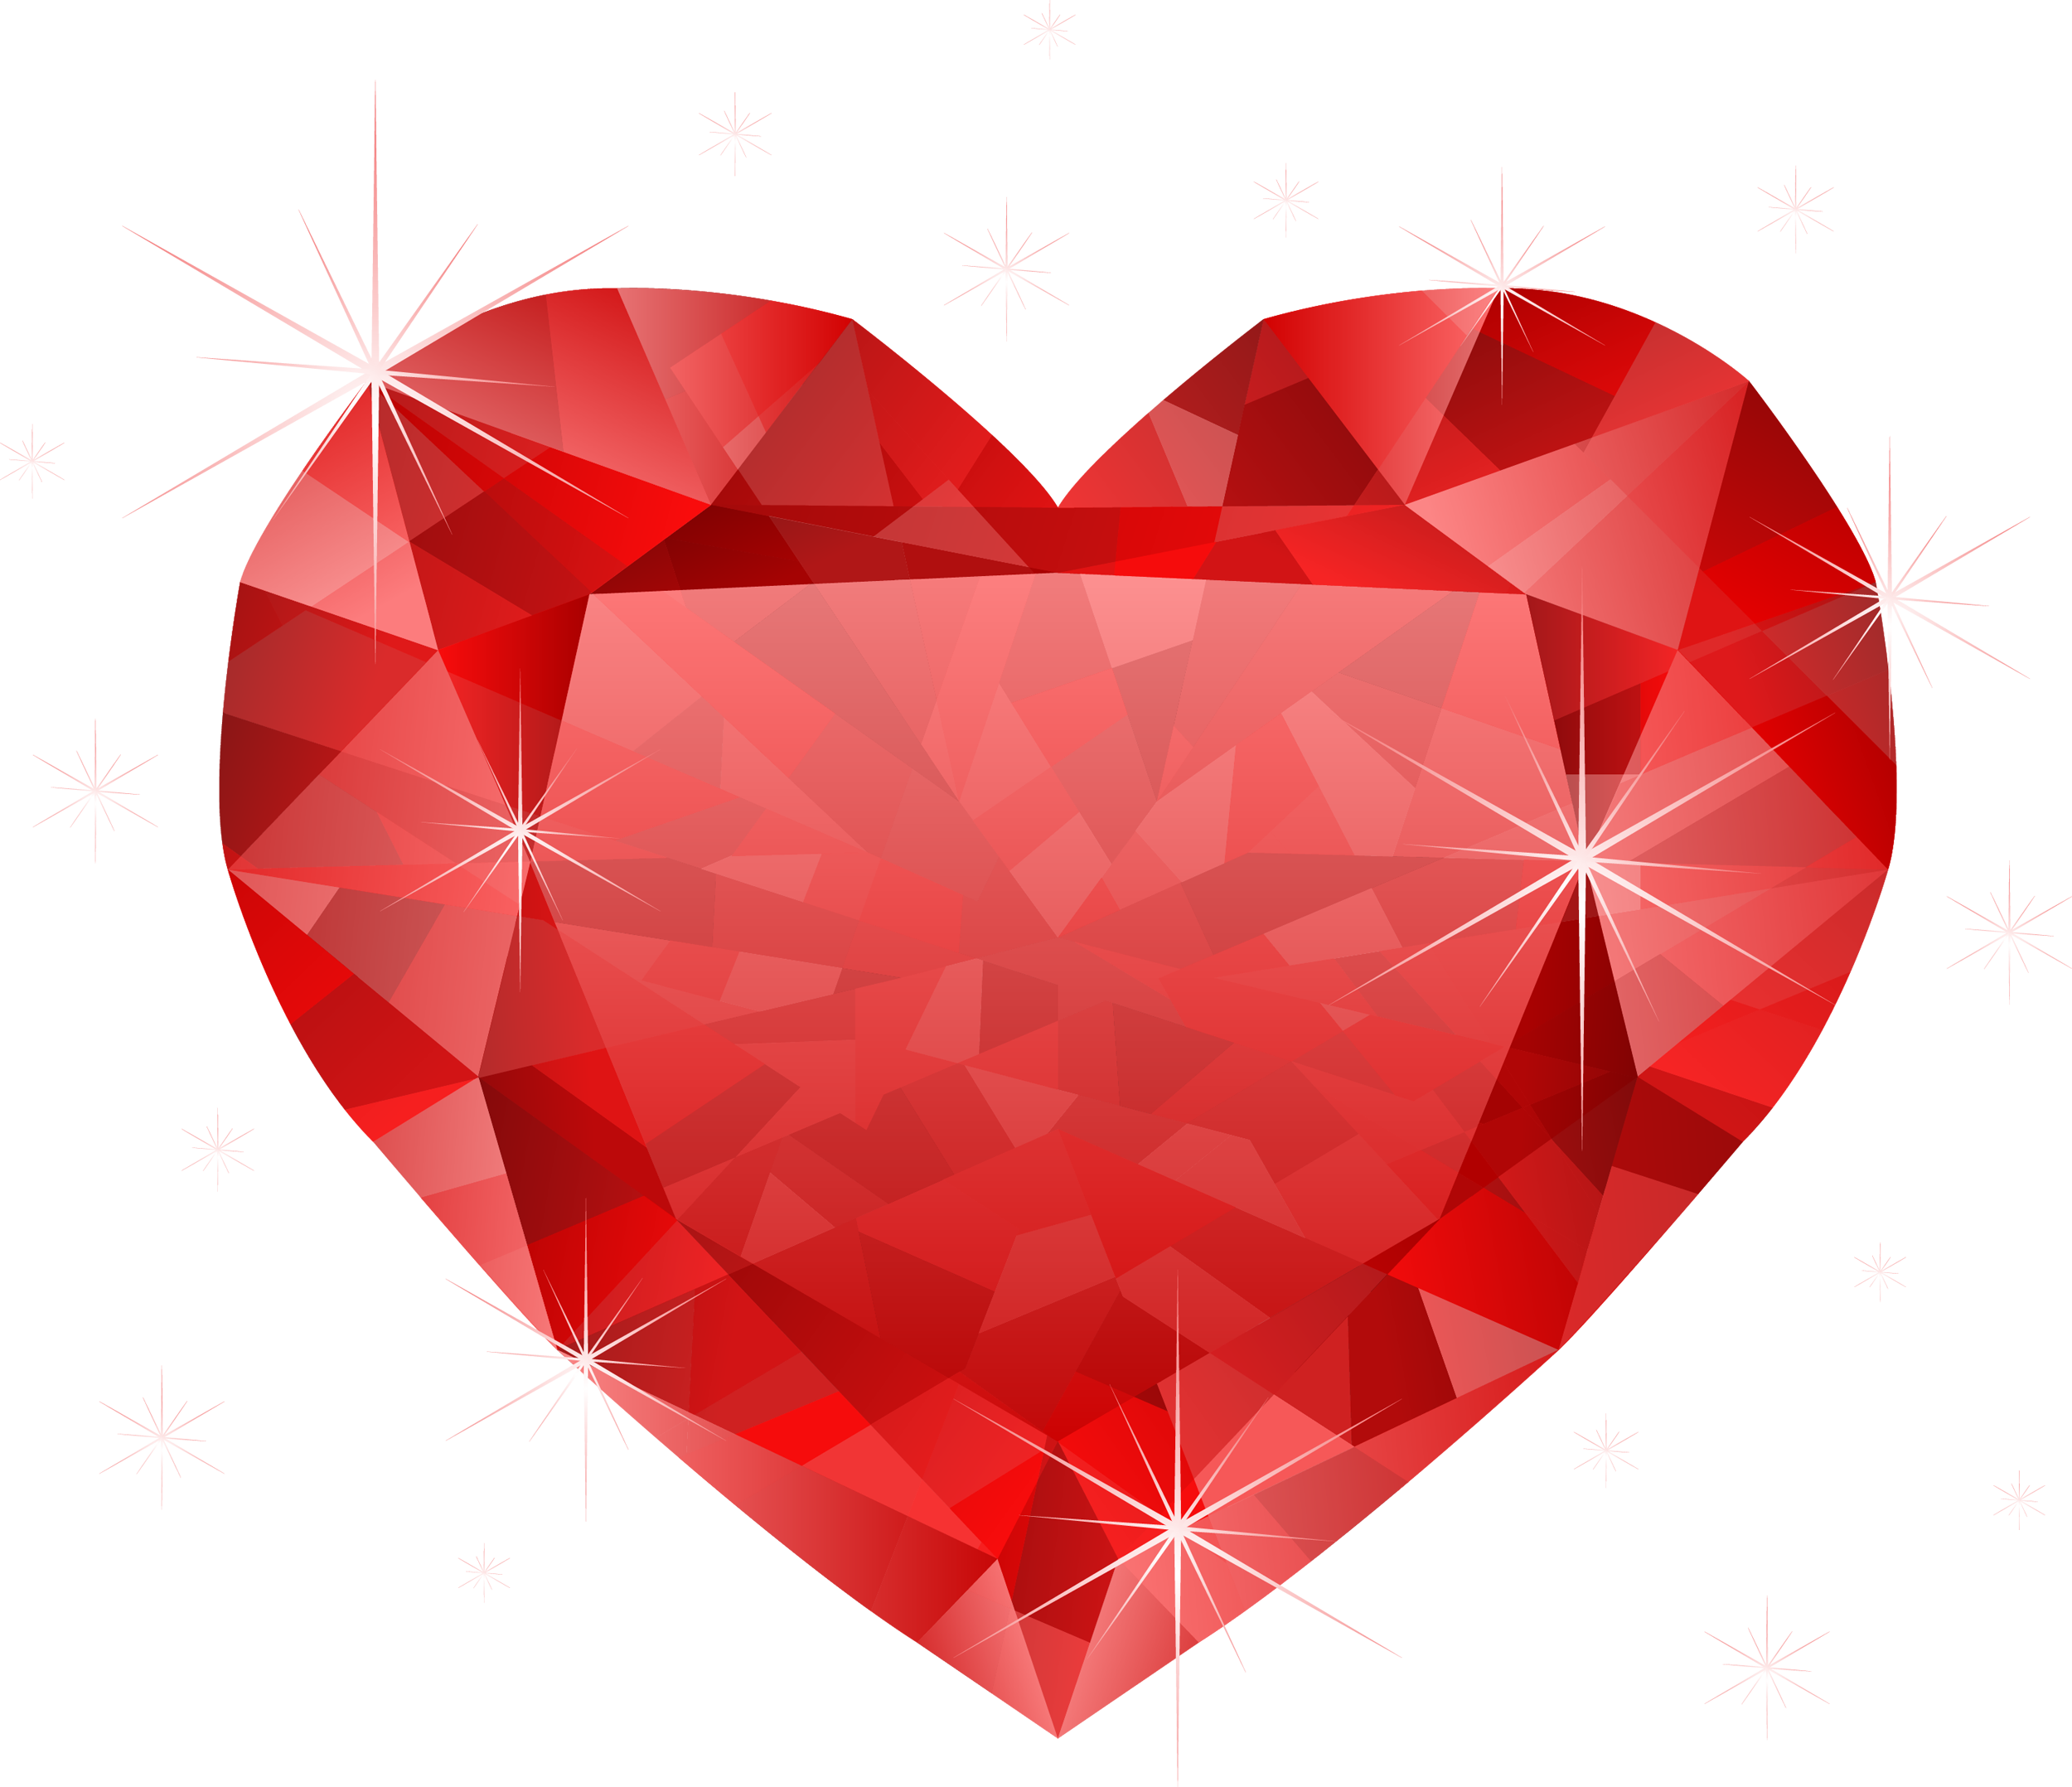 Diamond heart png. Large transparent red clipart